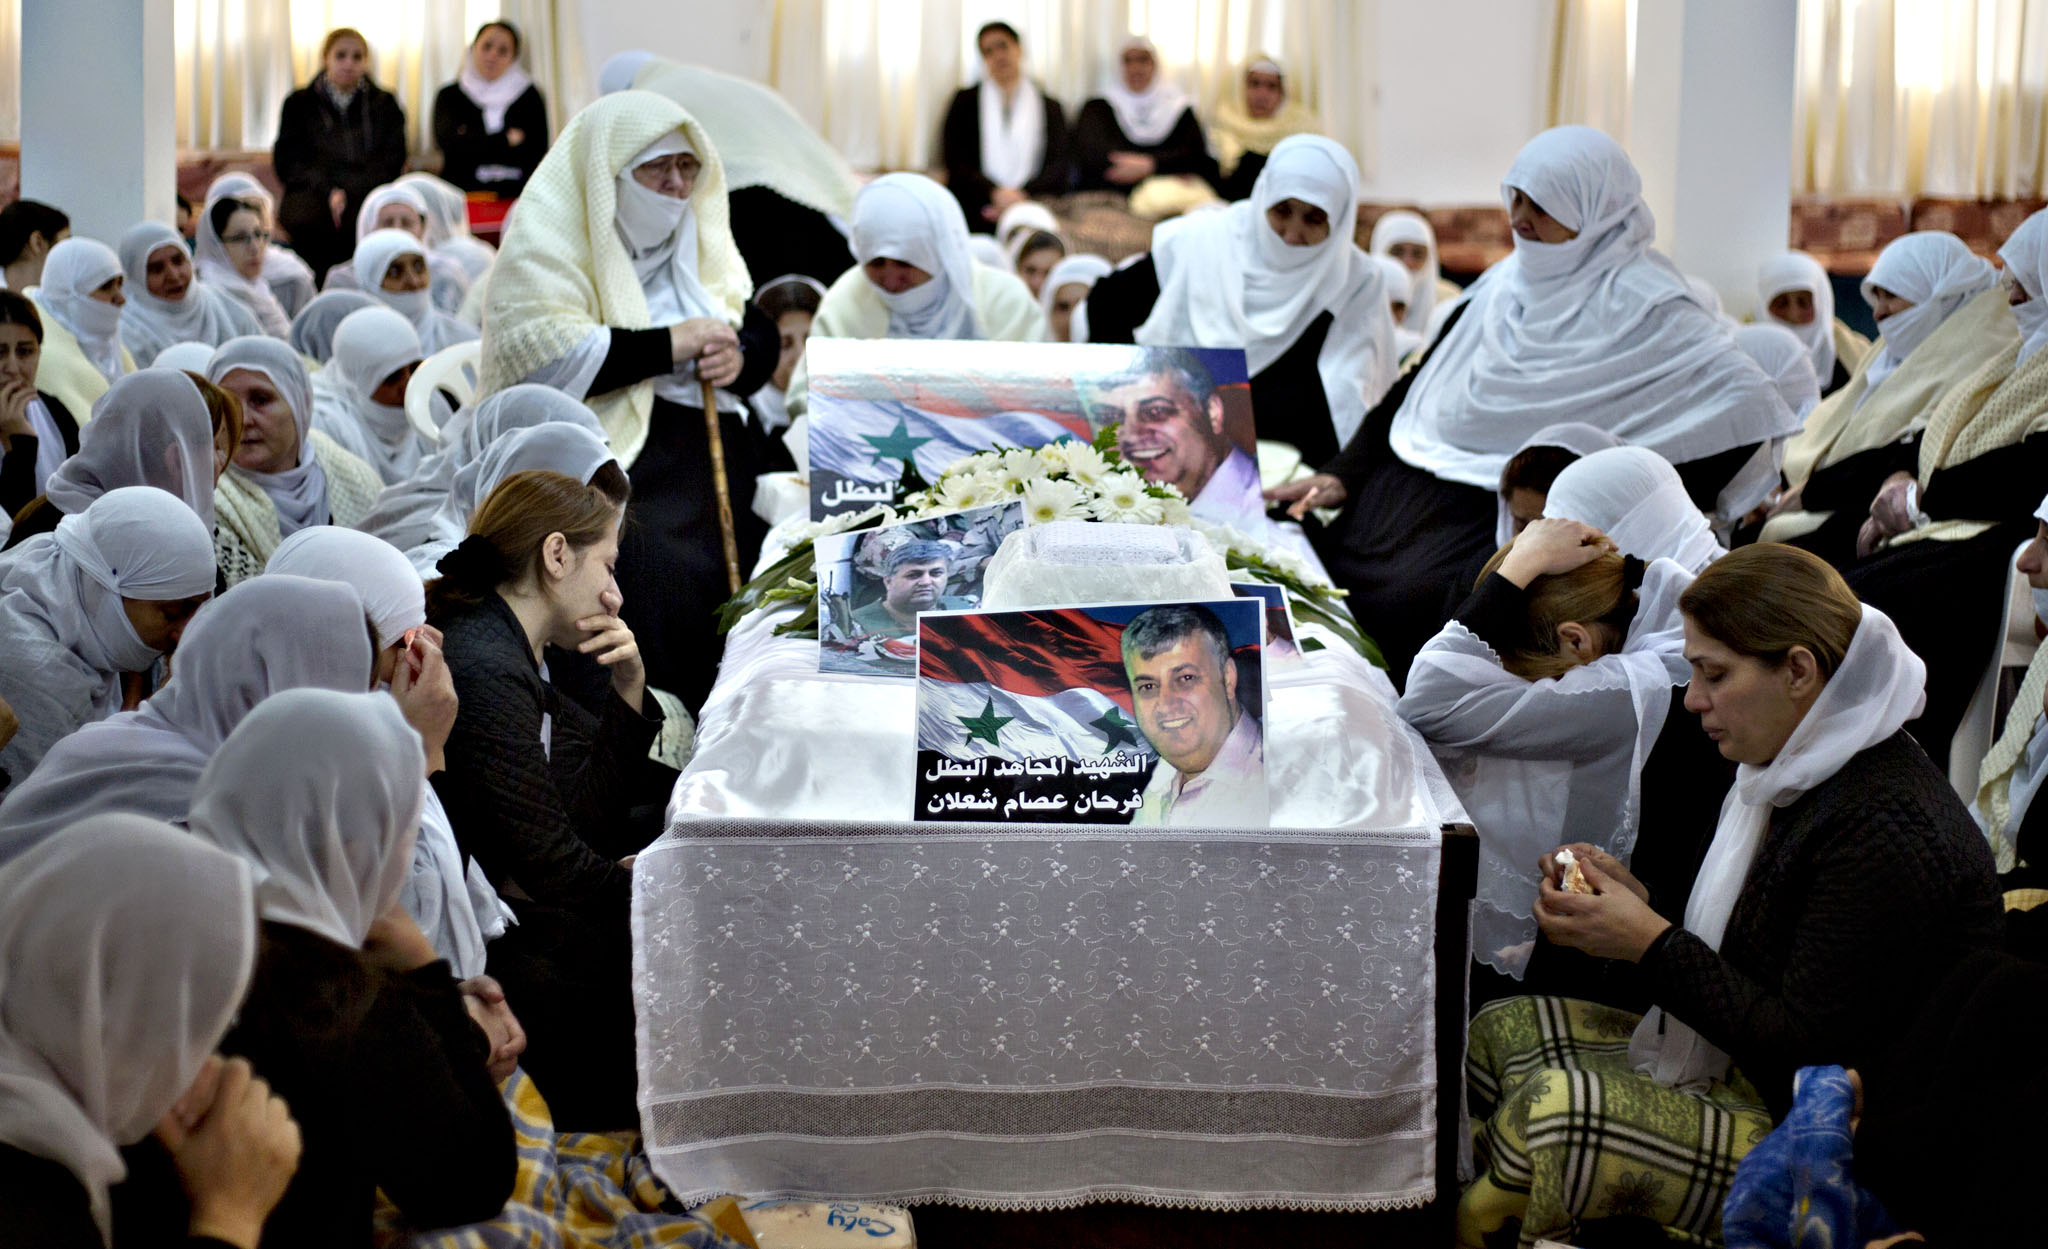 Druze women mourn their relatives Farhan al-Shaalan and Samir Kantar, who were killed from an Israeli airstrike near the Syrian capital, in the Druze village of Ein Kinya in the Israeli controlled Golan Heights, near the border with Syria. Kantar, a Lebanese who was convicted of carrying out one of the most notorious attacks in Israeli history and spent nearly three decades in an Israeli prison, has been killed by an Israeli airstrike near the Syrian capital, the Lebanese Shiite Hezbollah group said Sunday. Al-Mayadeen said that al-Shaalan, a senior commander with the anti-Israeli  resistance  movement in the Golan Heights, was also killed in the air raid together with an aide to Kantar